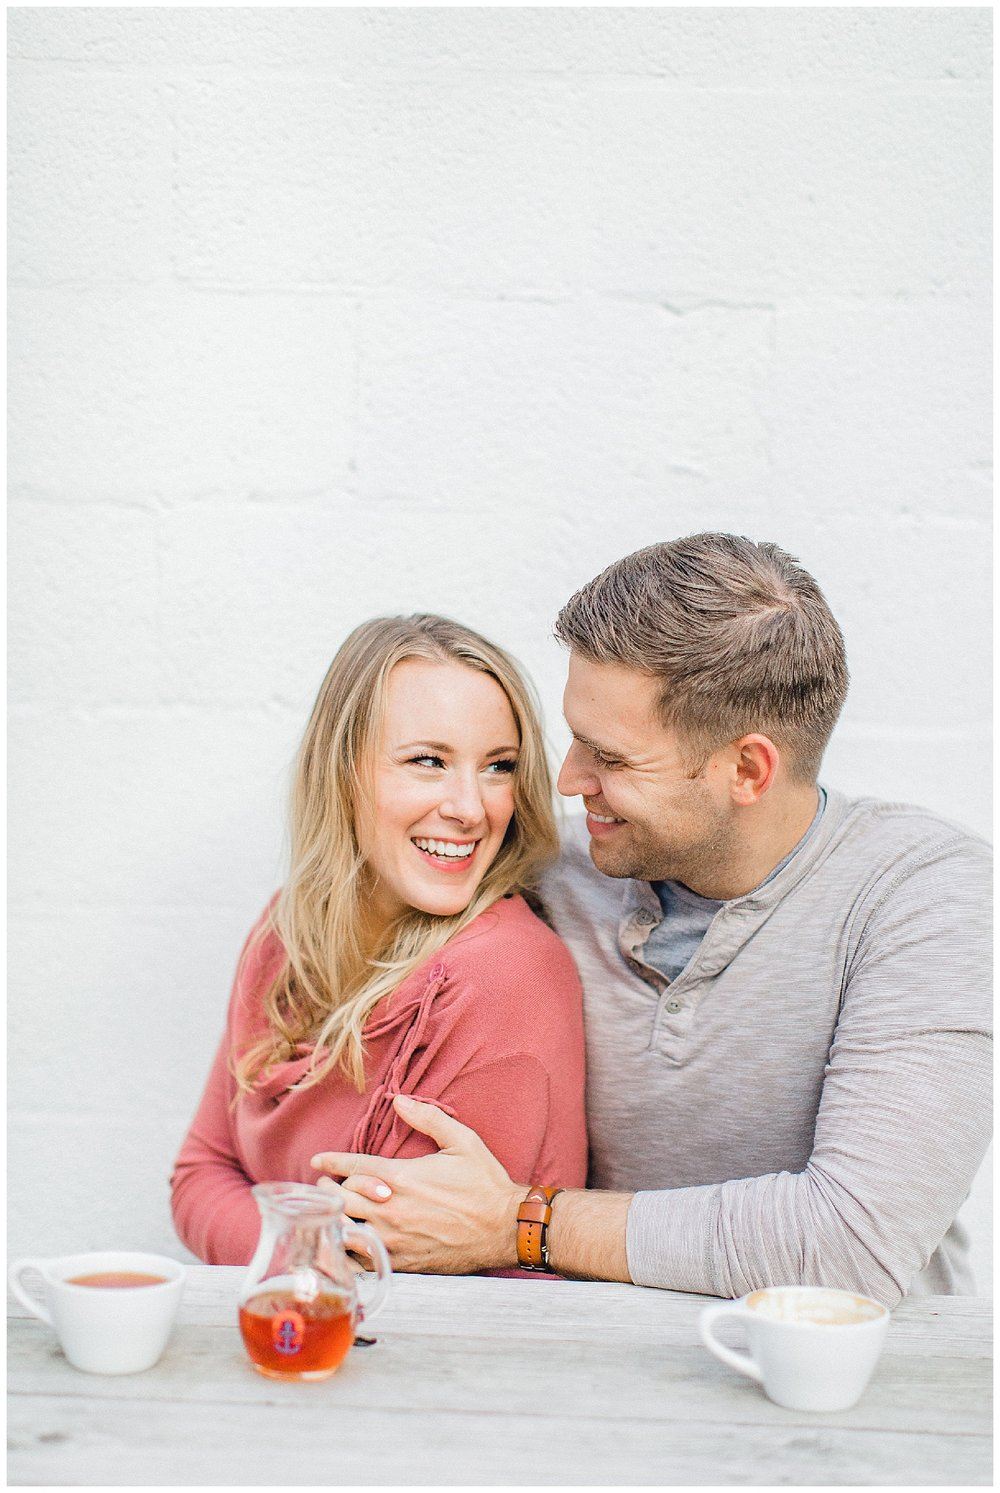 ERC_0990_Downtown Nashville Engagement Session at Barista Parlor | Emma Rose Company Wedding Photographer | Outfit Inspiration for Engagement Session | Kindred Light and Airy Photographer.jpg